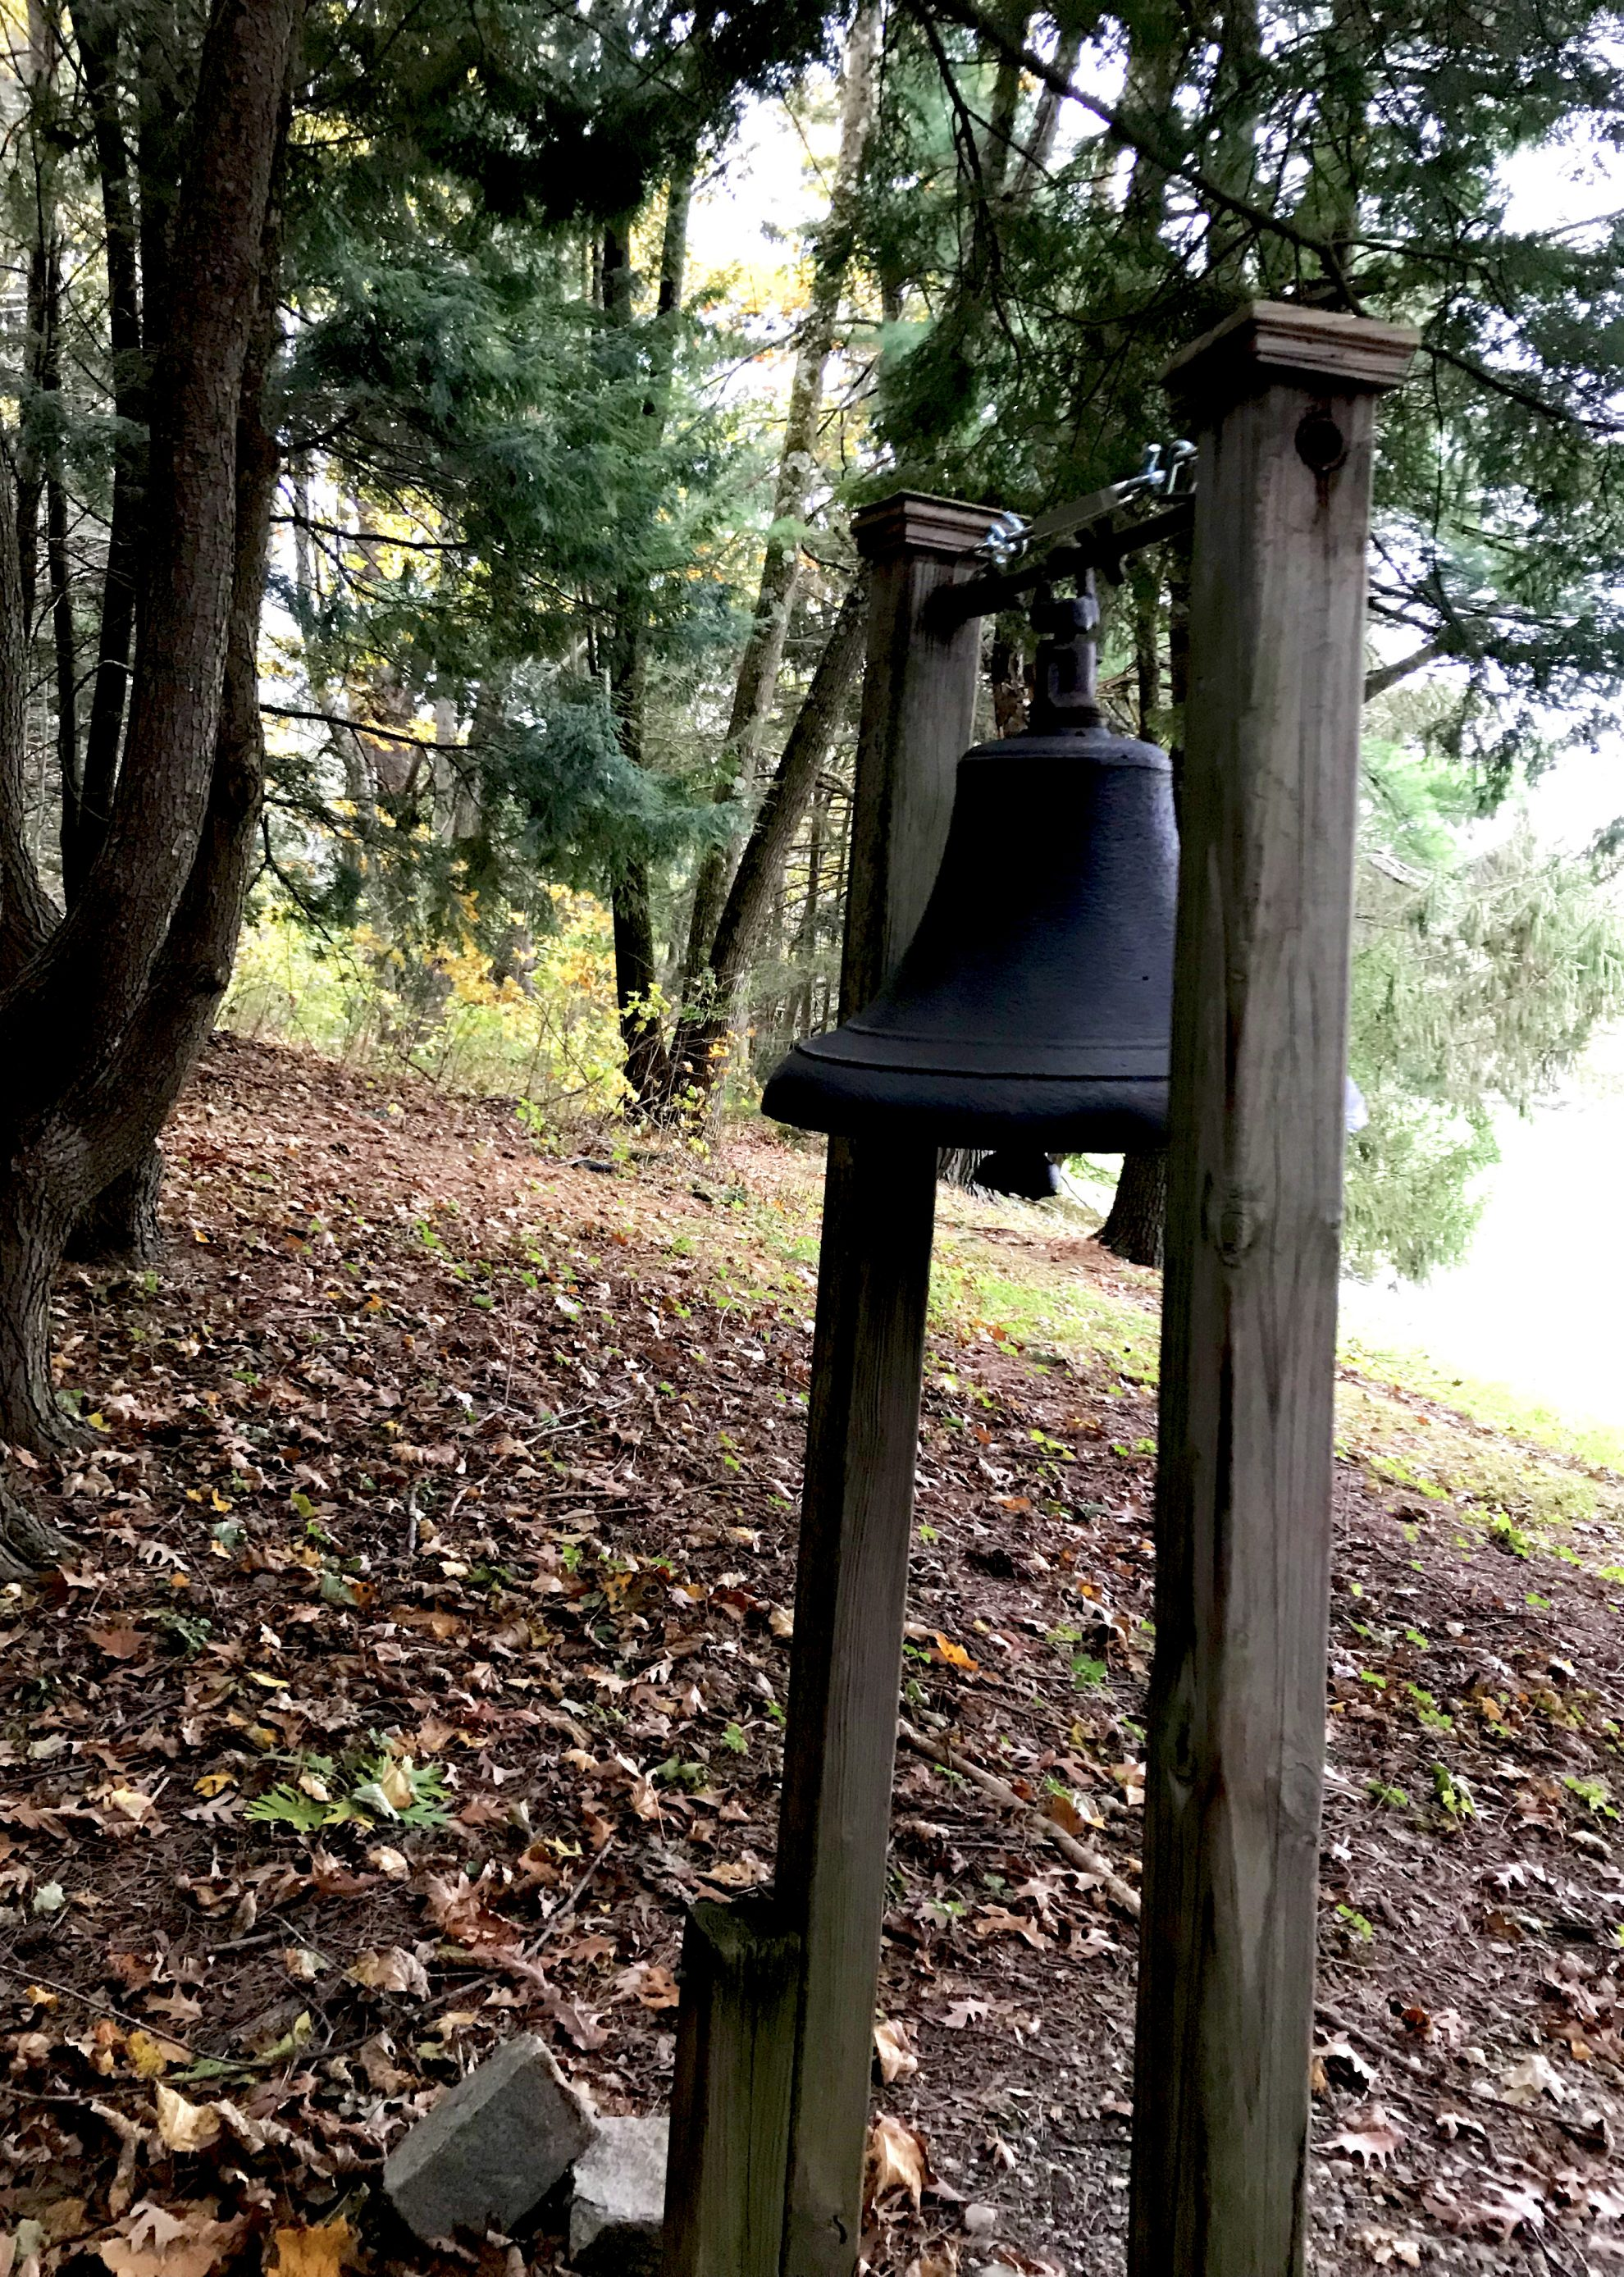 Large bell in the Meditation Garden at Kripalu Center for Yoga and Health